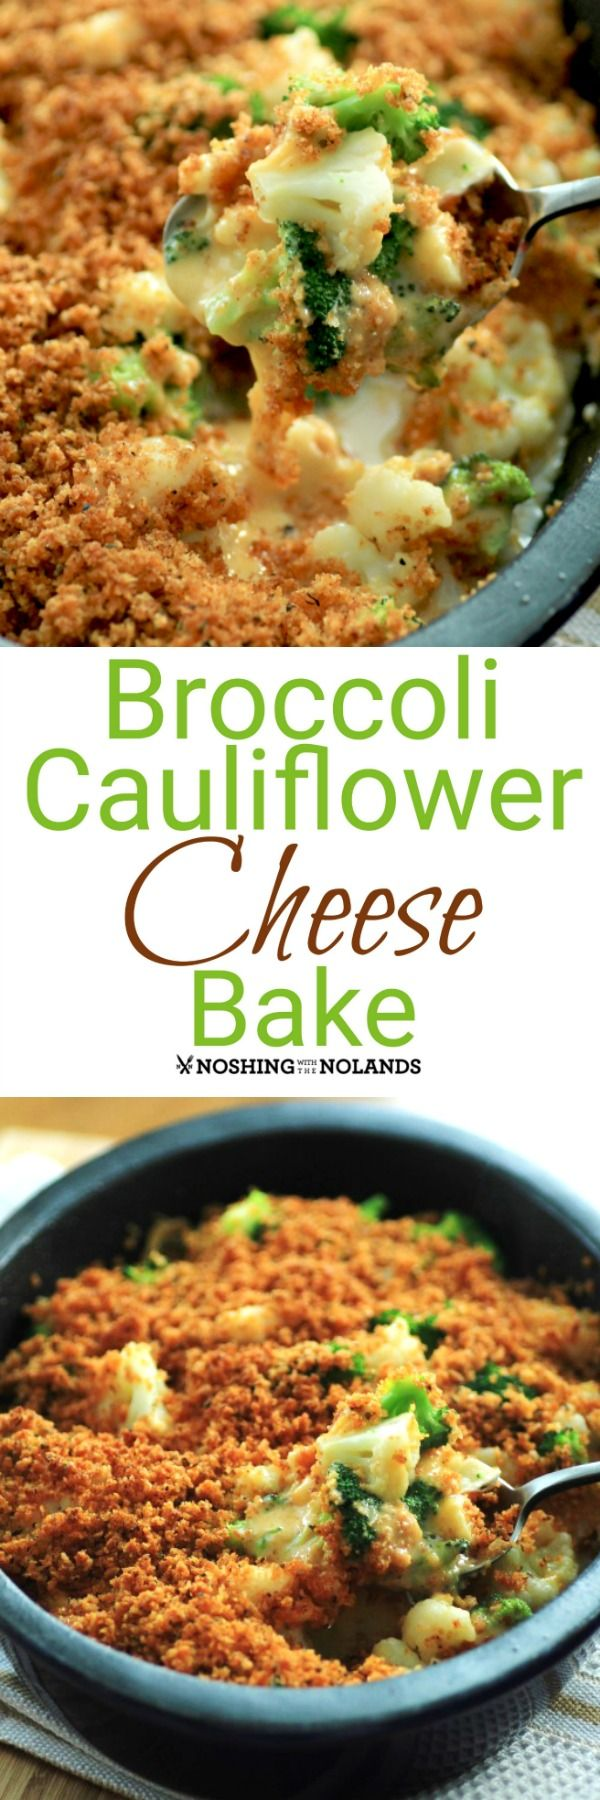 """1 lb. broccoli florets 1 lb. cauliflower florets 1 c  panko crumbs ¼ c melted butter 1 t. thyme,1 t oregano 1 T smoked paprika ½ t cayenne 1 t pepper ½ lb. Velveeta, cubed ¼ lb. Camembert, cubed Blanch the broccoli and cauliflower for 3 min. Drain,place immed in ice water. Drain,dry on paper towels. Mix crumbs, butter&spices.  Oven 450F. In a sprayed 8x11""""add the broccolli, cauliflower, Velveeta & Camembert. Top w crumb mix. Wrap w foil,bake for 15-20 min. Remove foil, bake 5 min"""